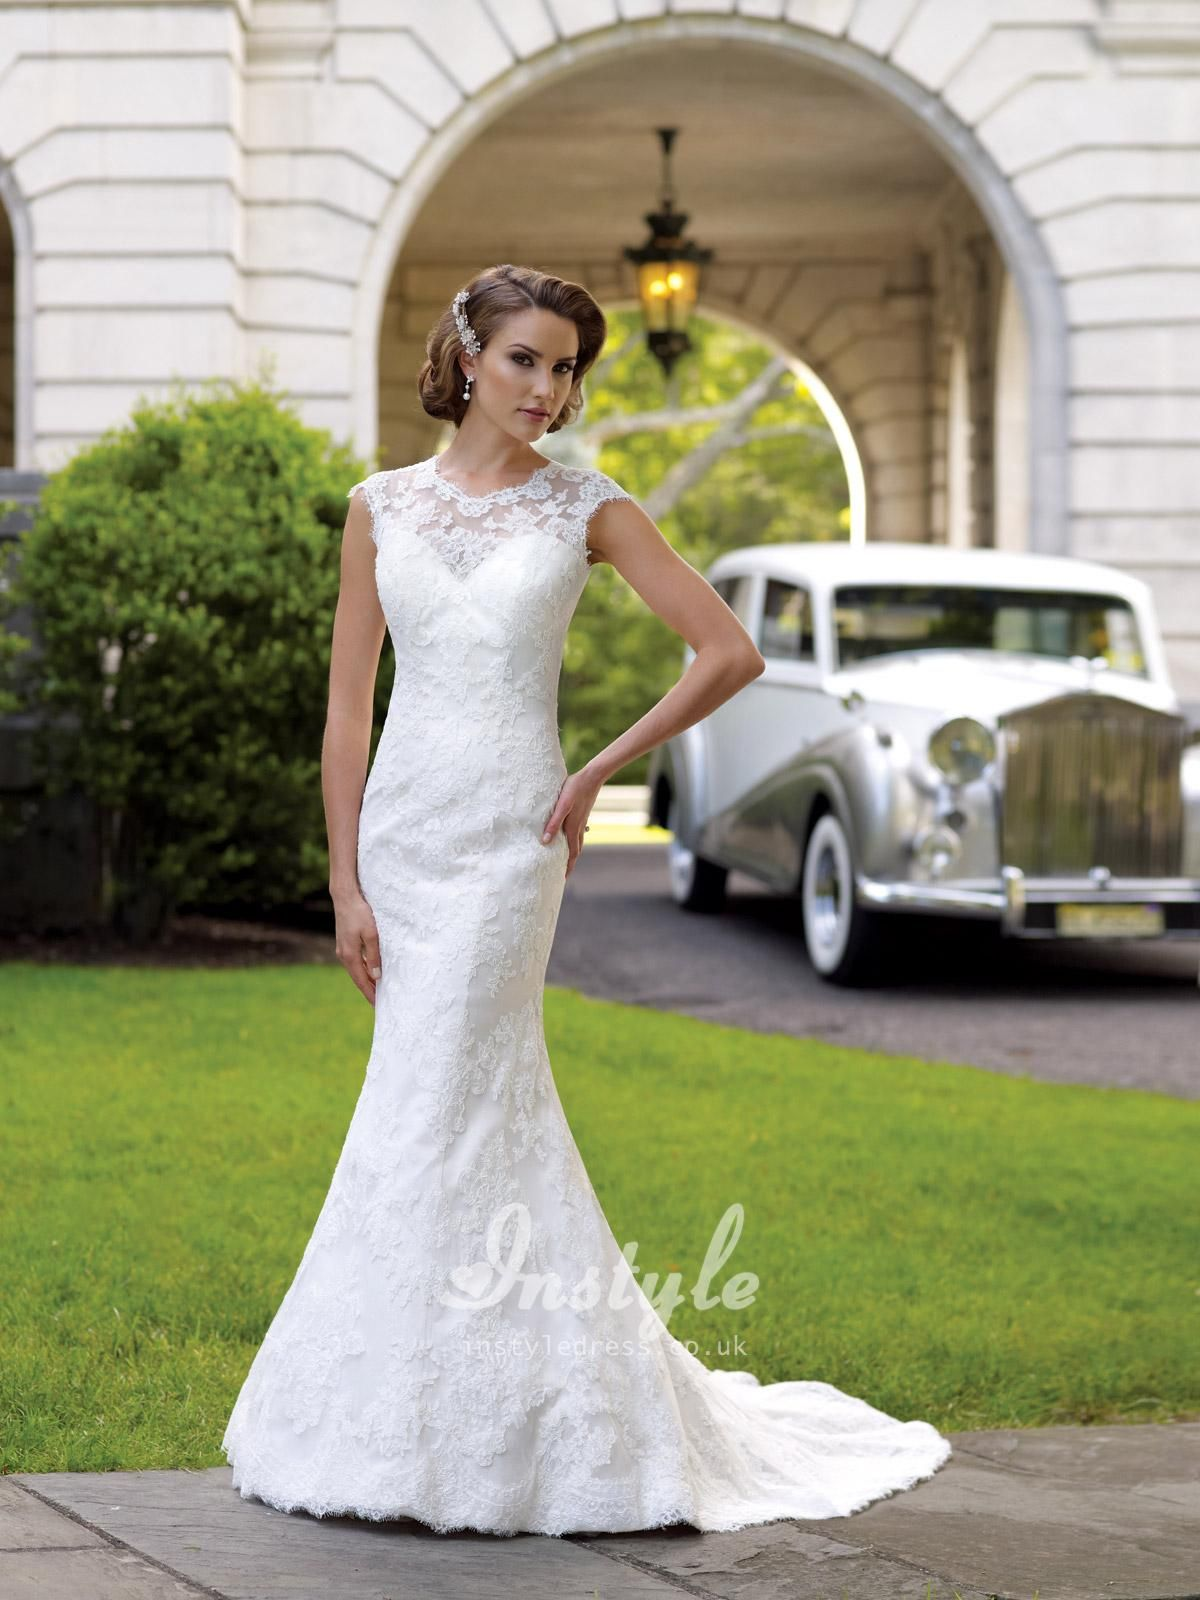 Lace Over Satin Mermaid Wedding Dress UK with Illusion Neckline and ...